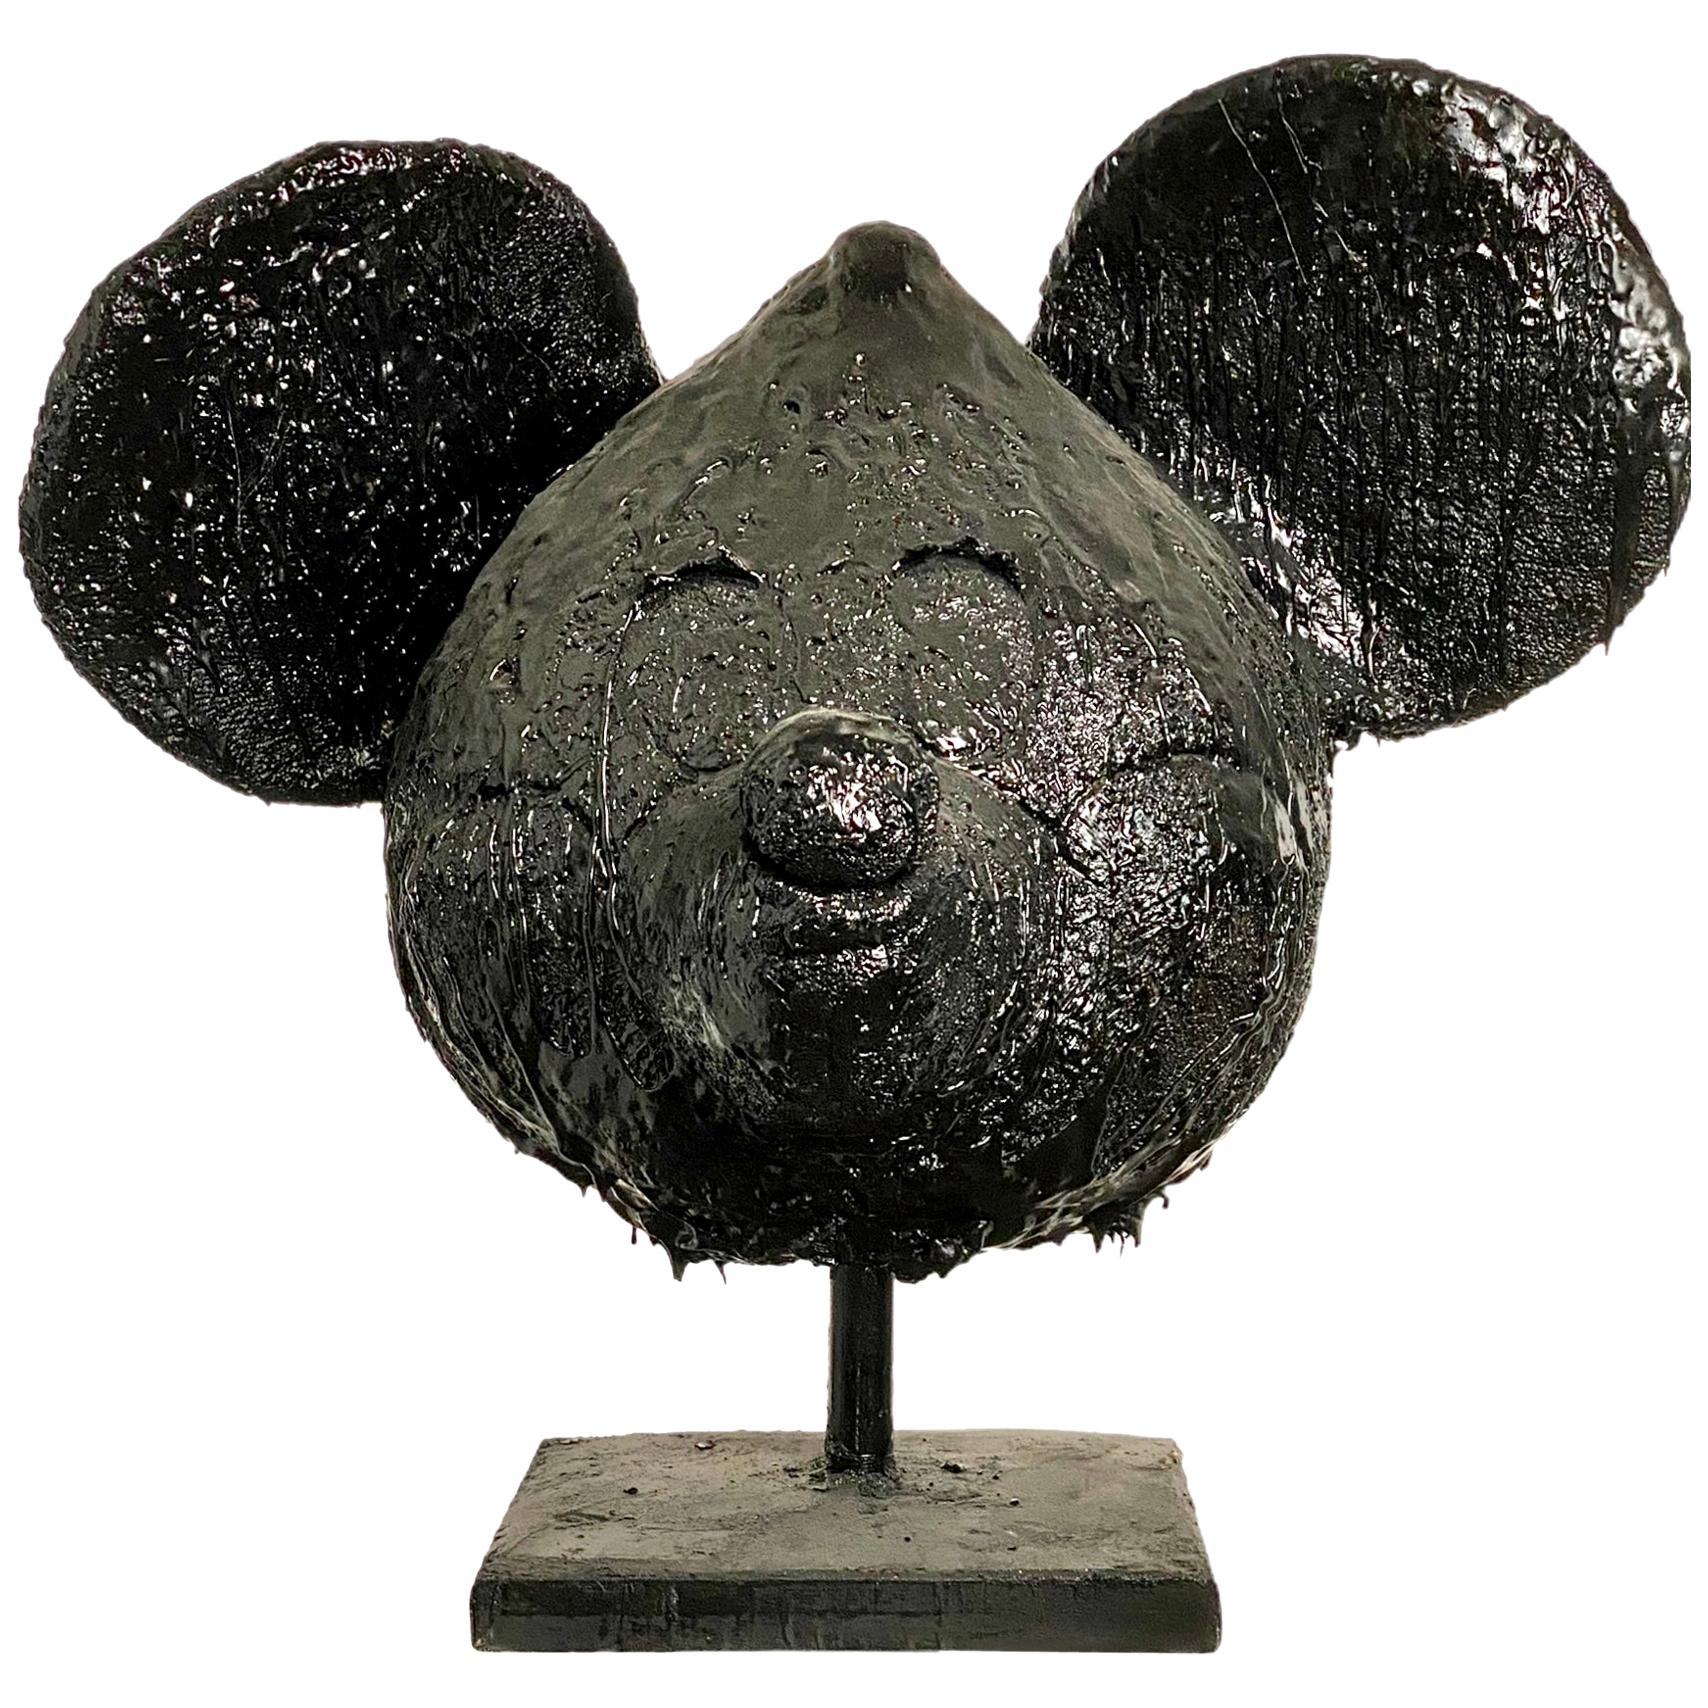 Black TAR Mickey Mouse Head Sculpture, 21st Century by Mattia Biagi